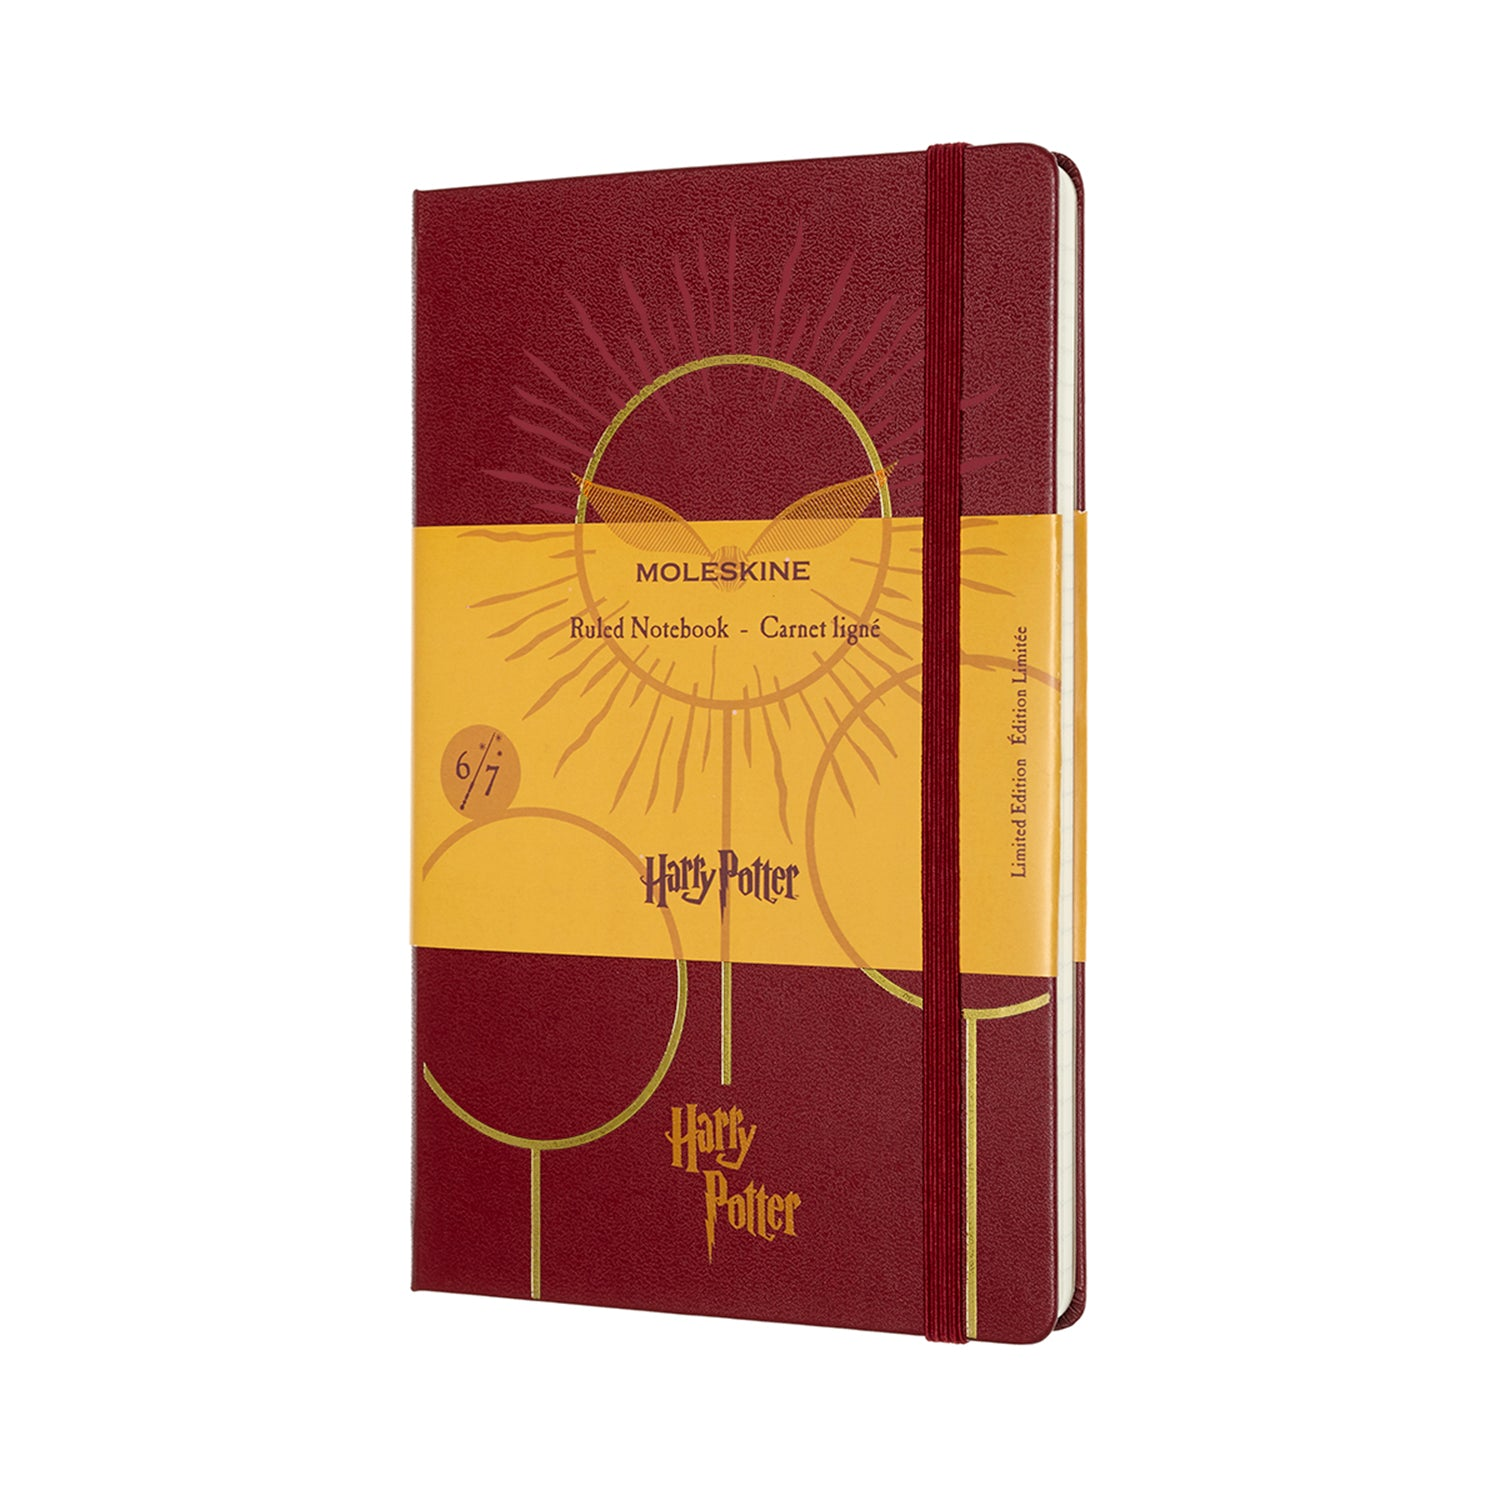 Moleskine Ruled Notebook, Harry Potter, 6 of 7, Quidditch